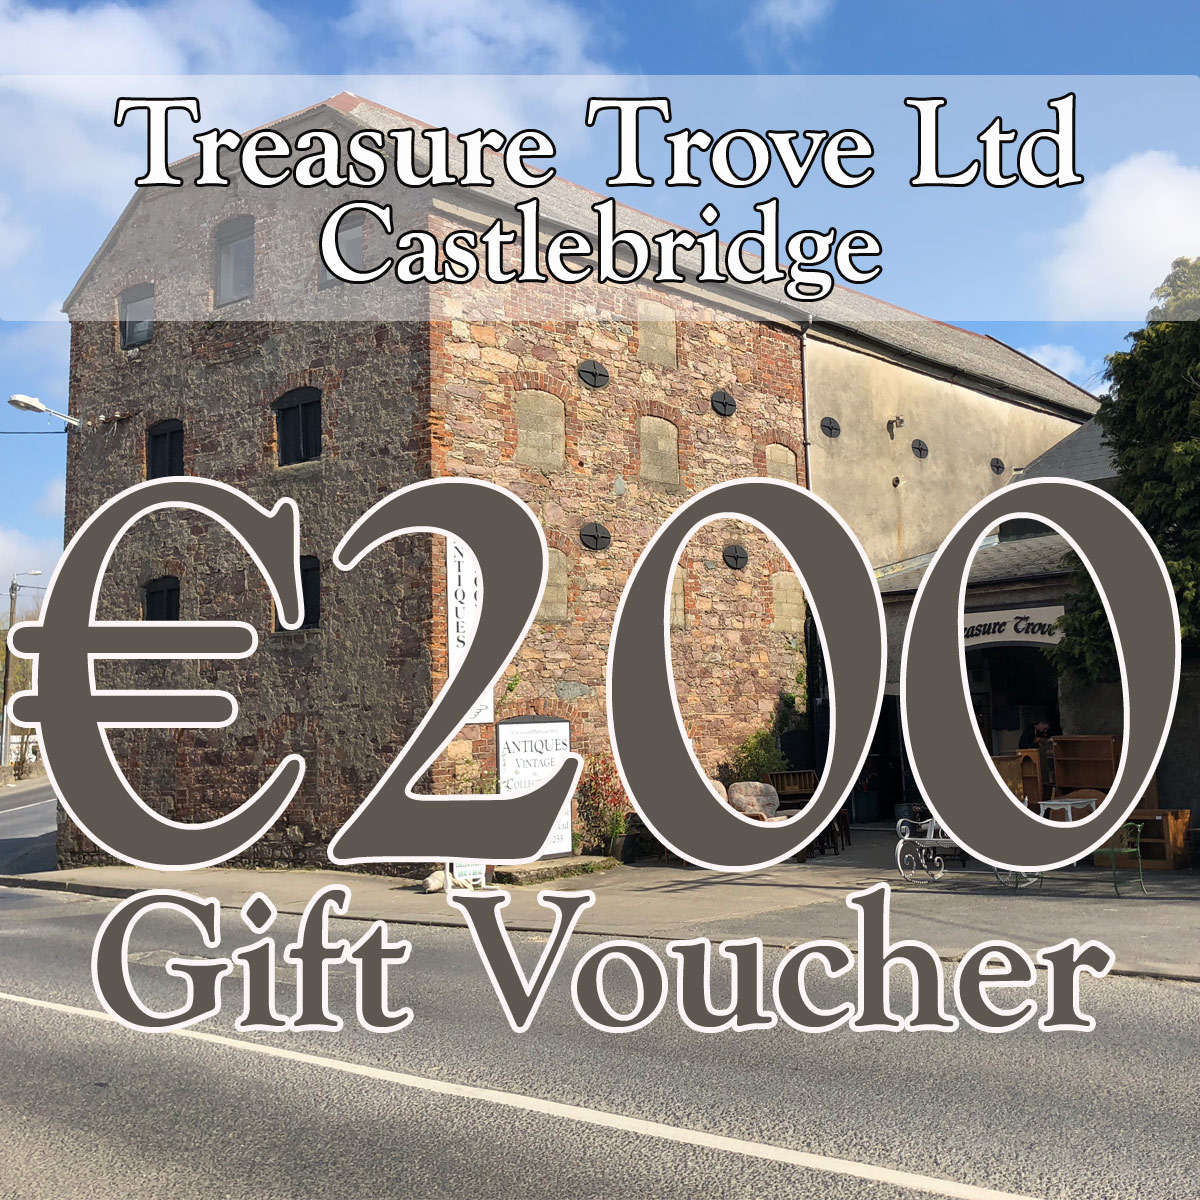 Treasure Trove Gift Voucher €200